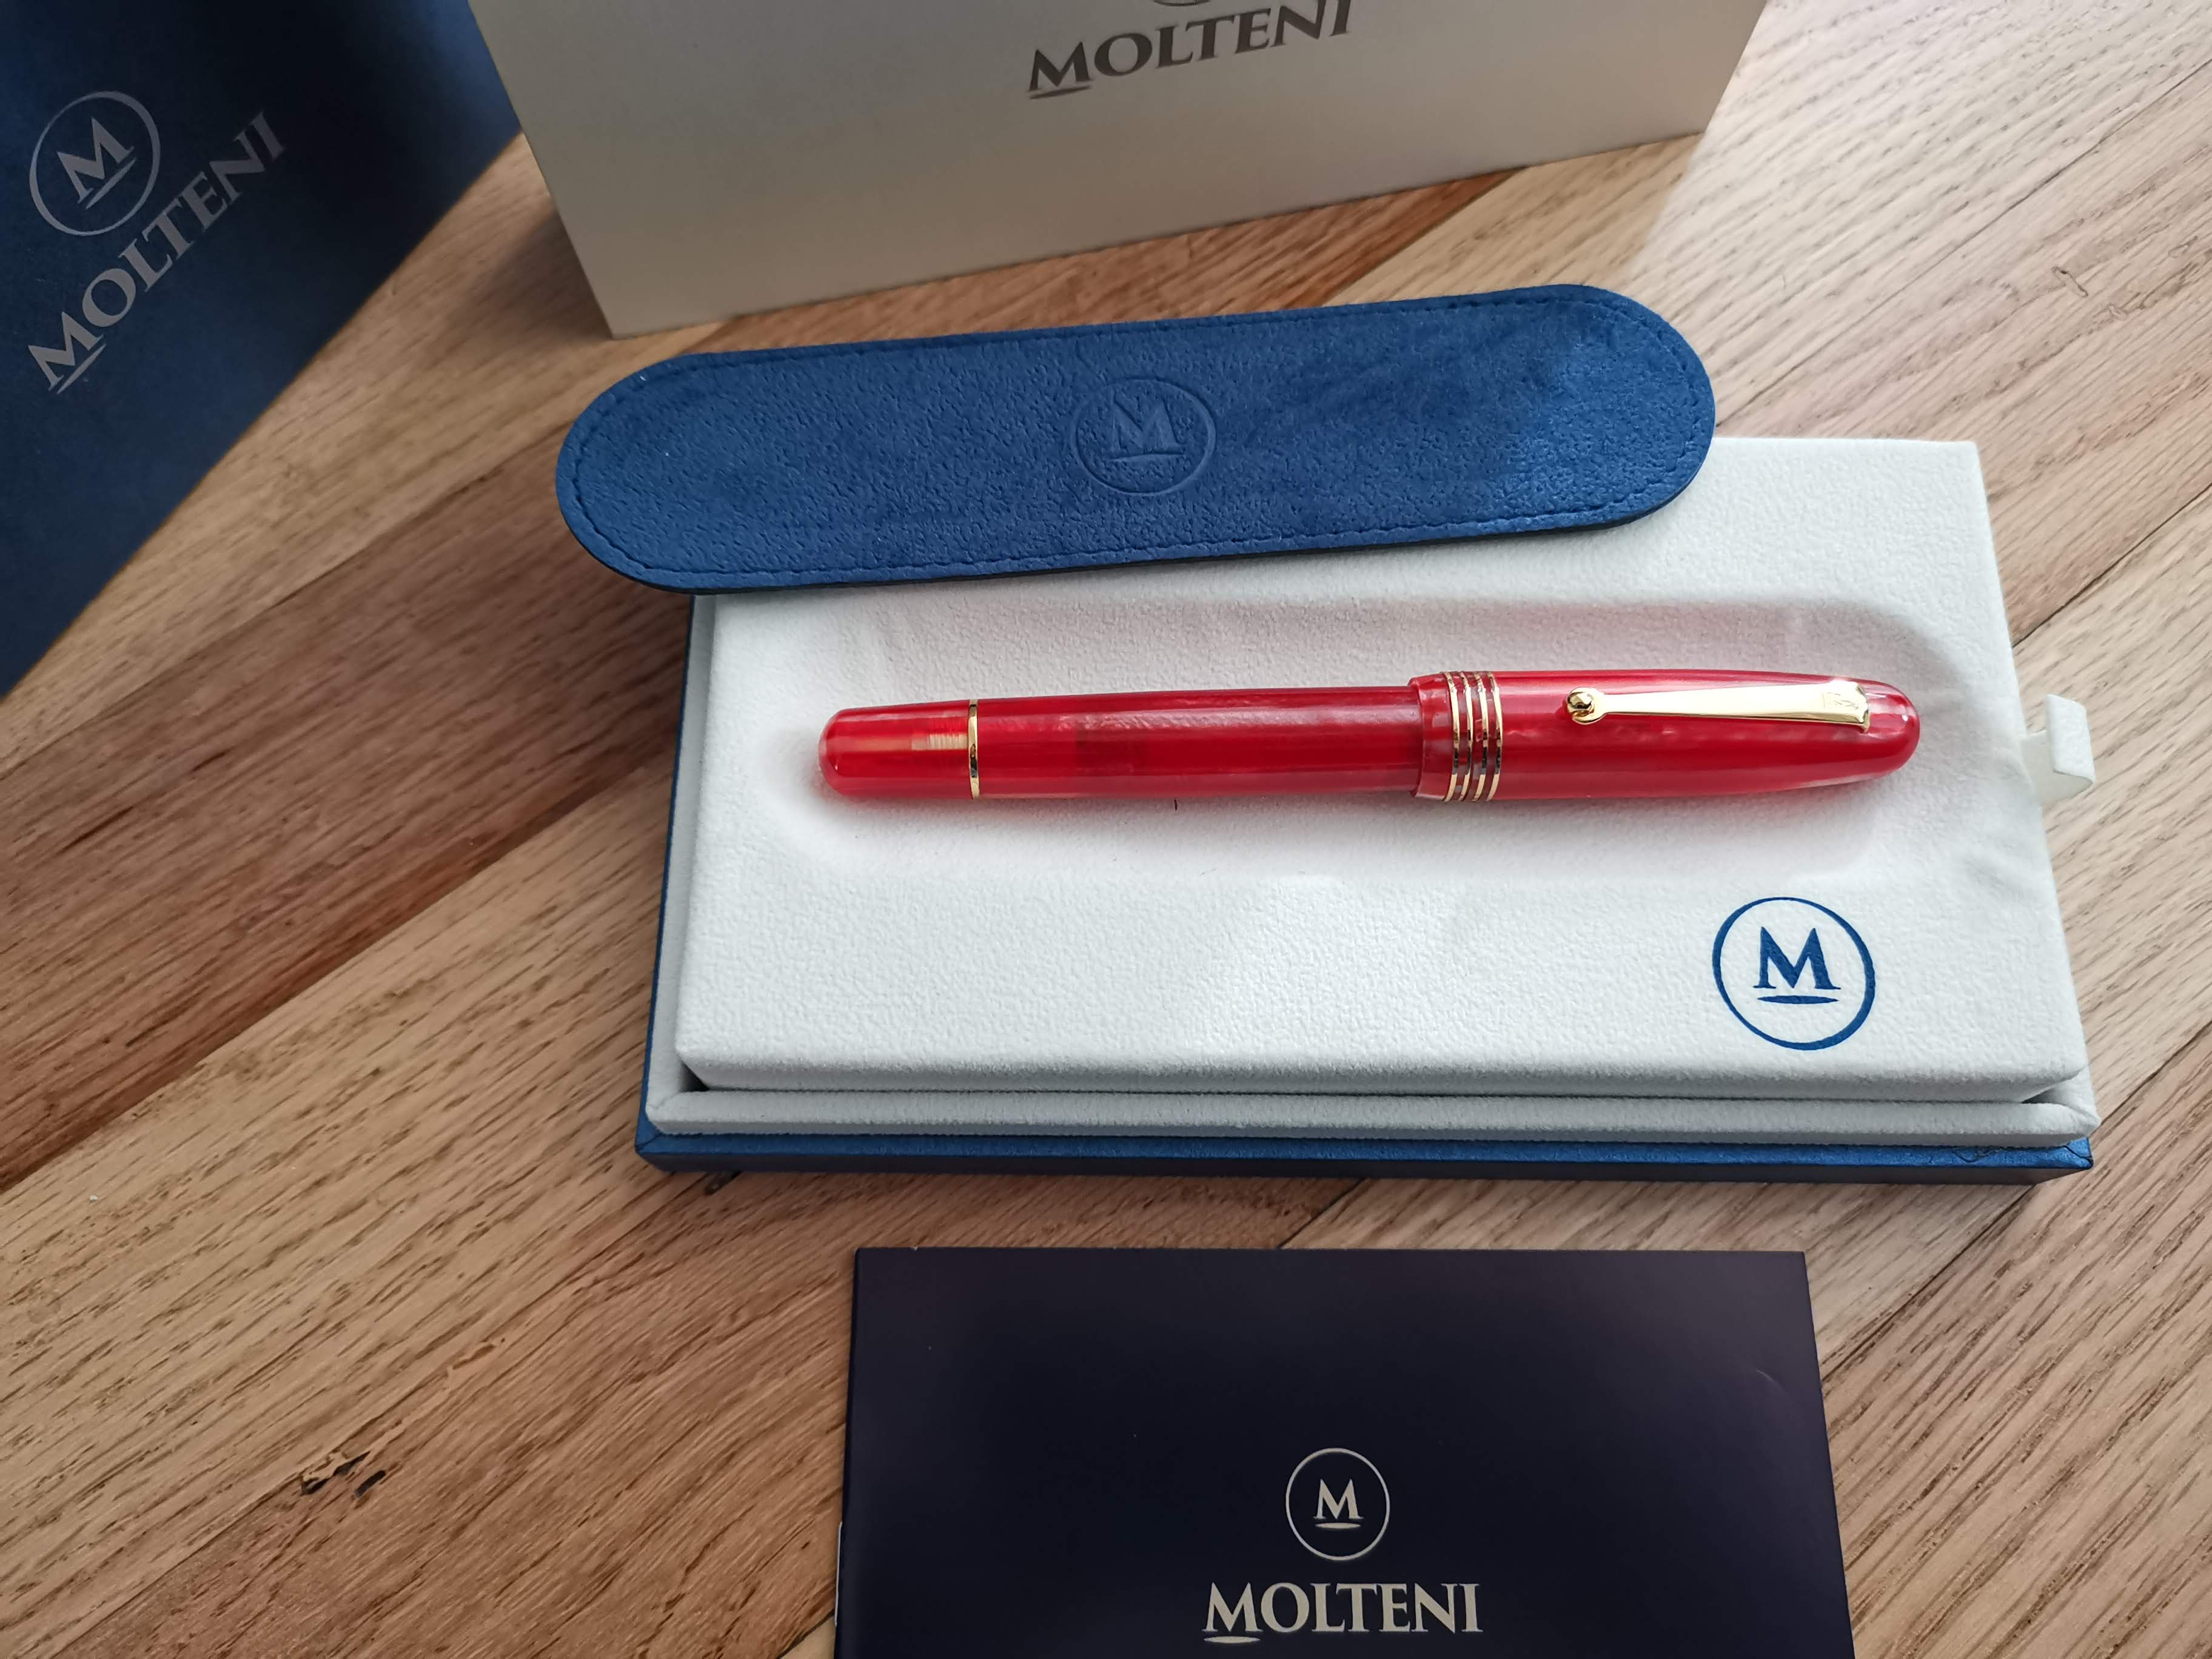 Details about  /MOLTENI PEN MODELO 54 INFERNO RED LT ED FOUNTAIN PEN